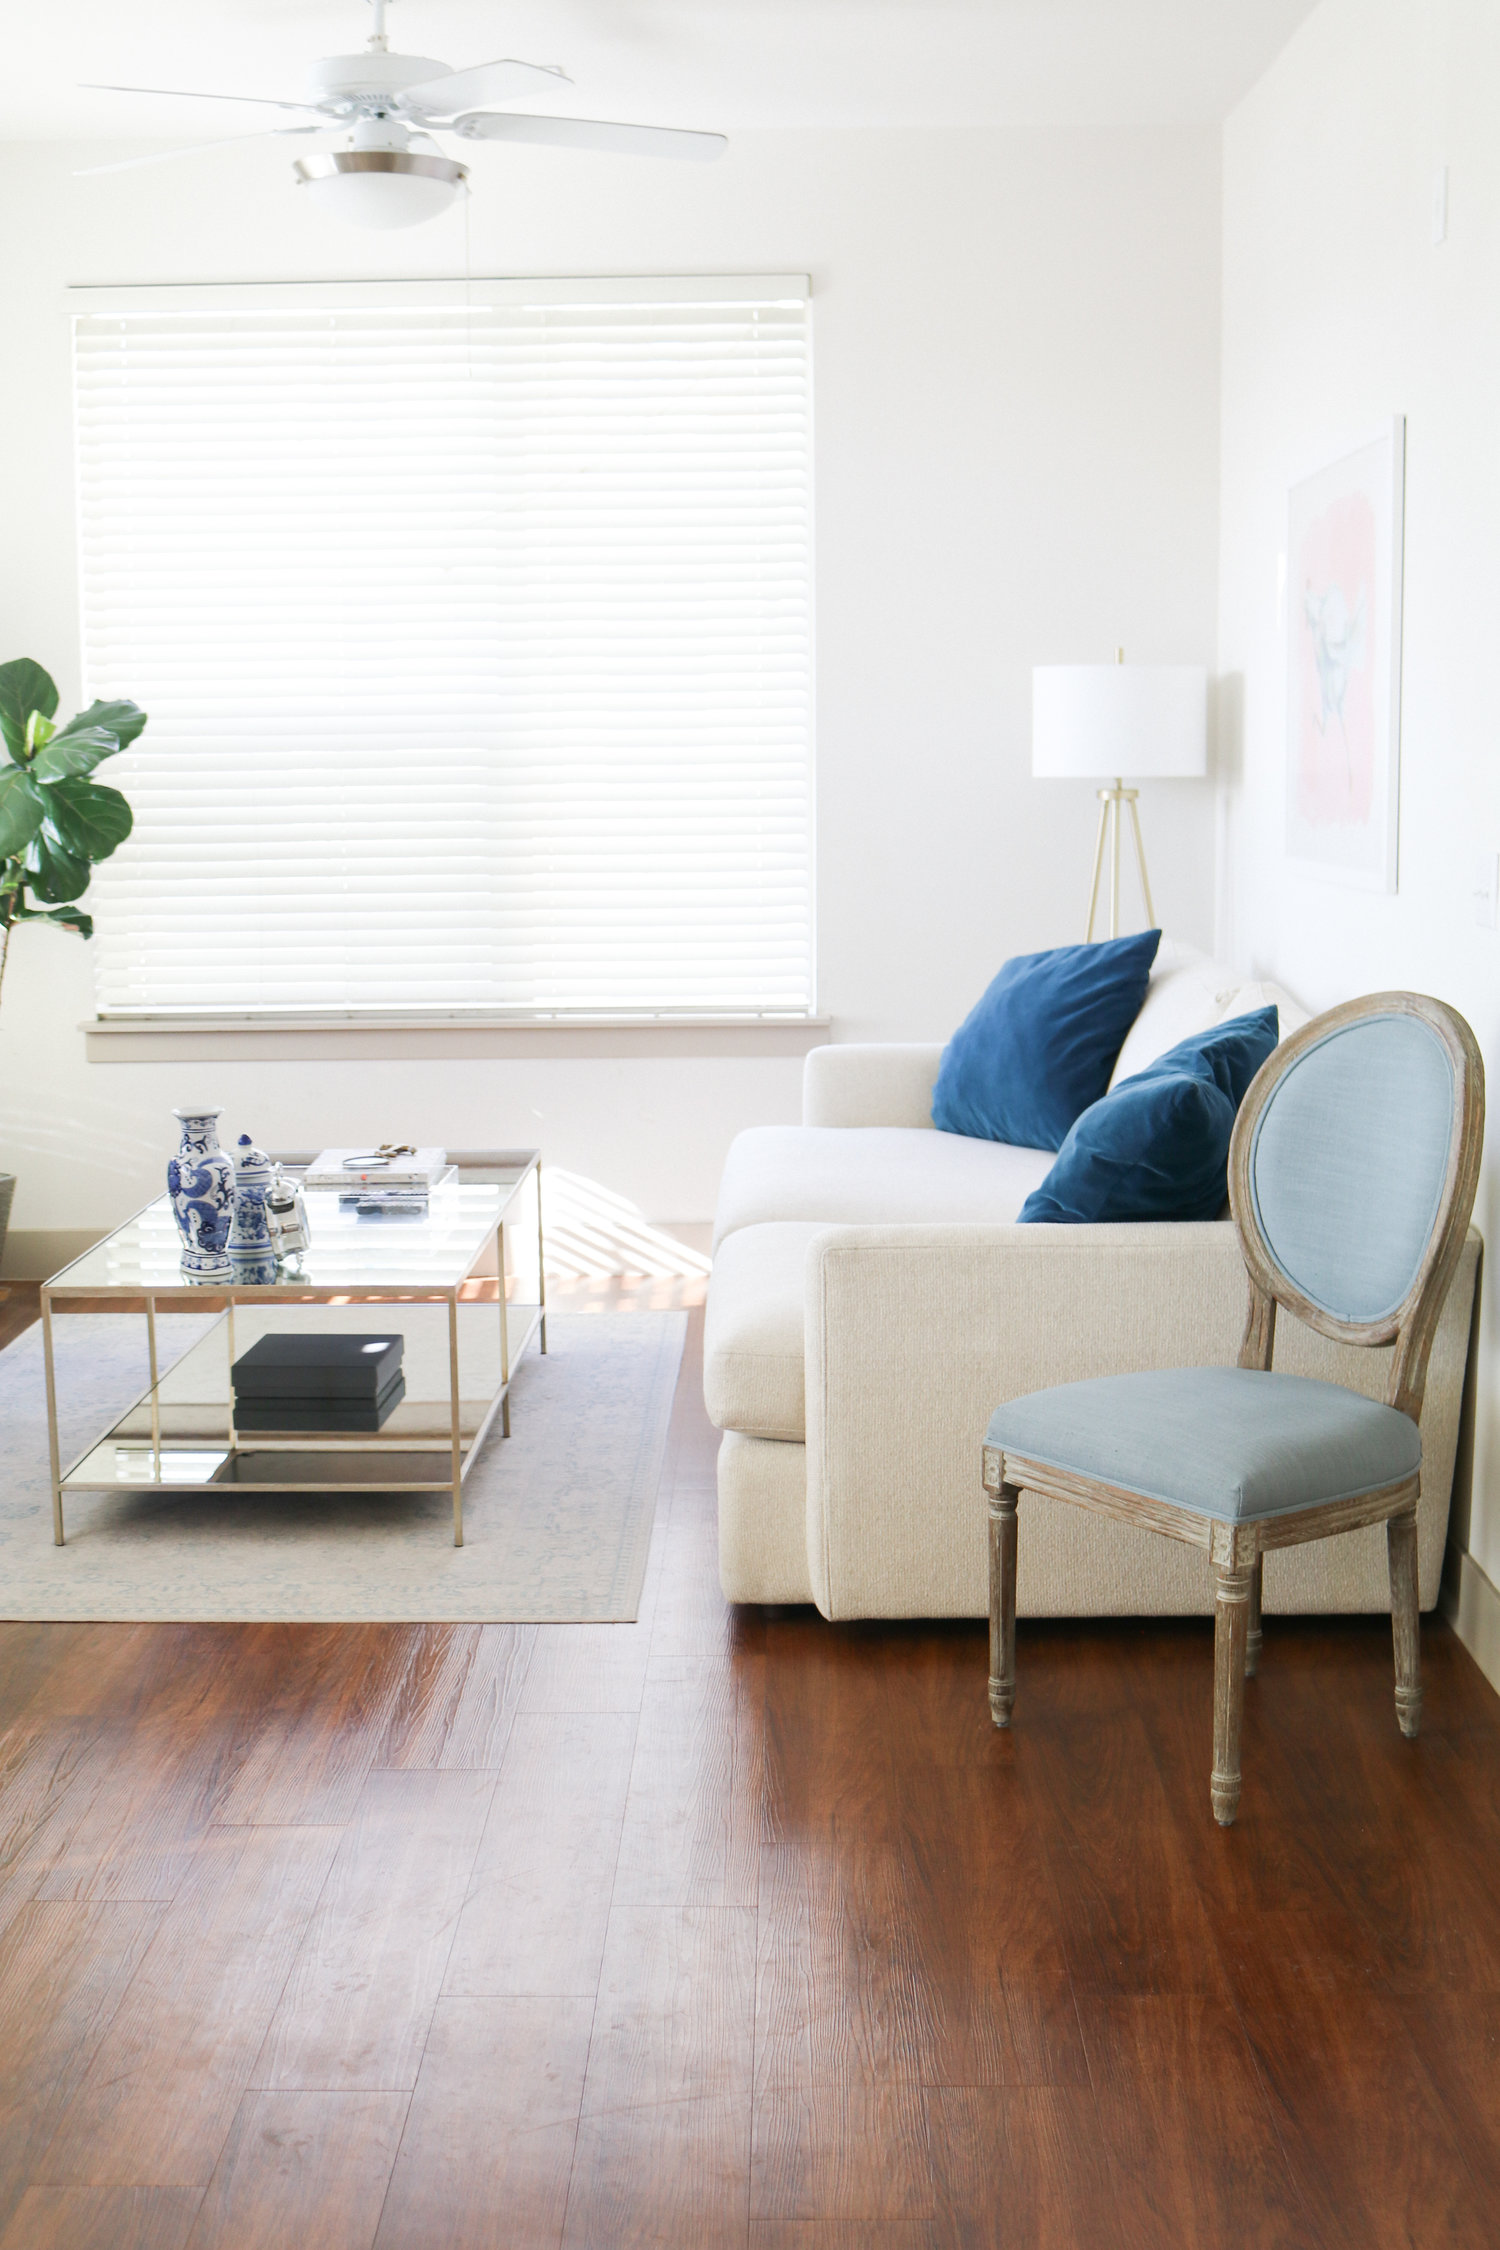 Our Denver Apartment Living Room + My 5 Rules for Decorating